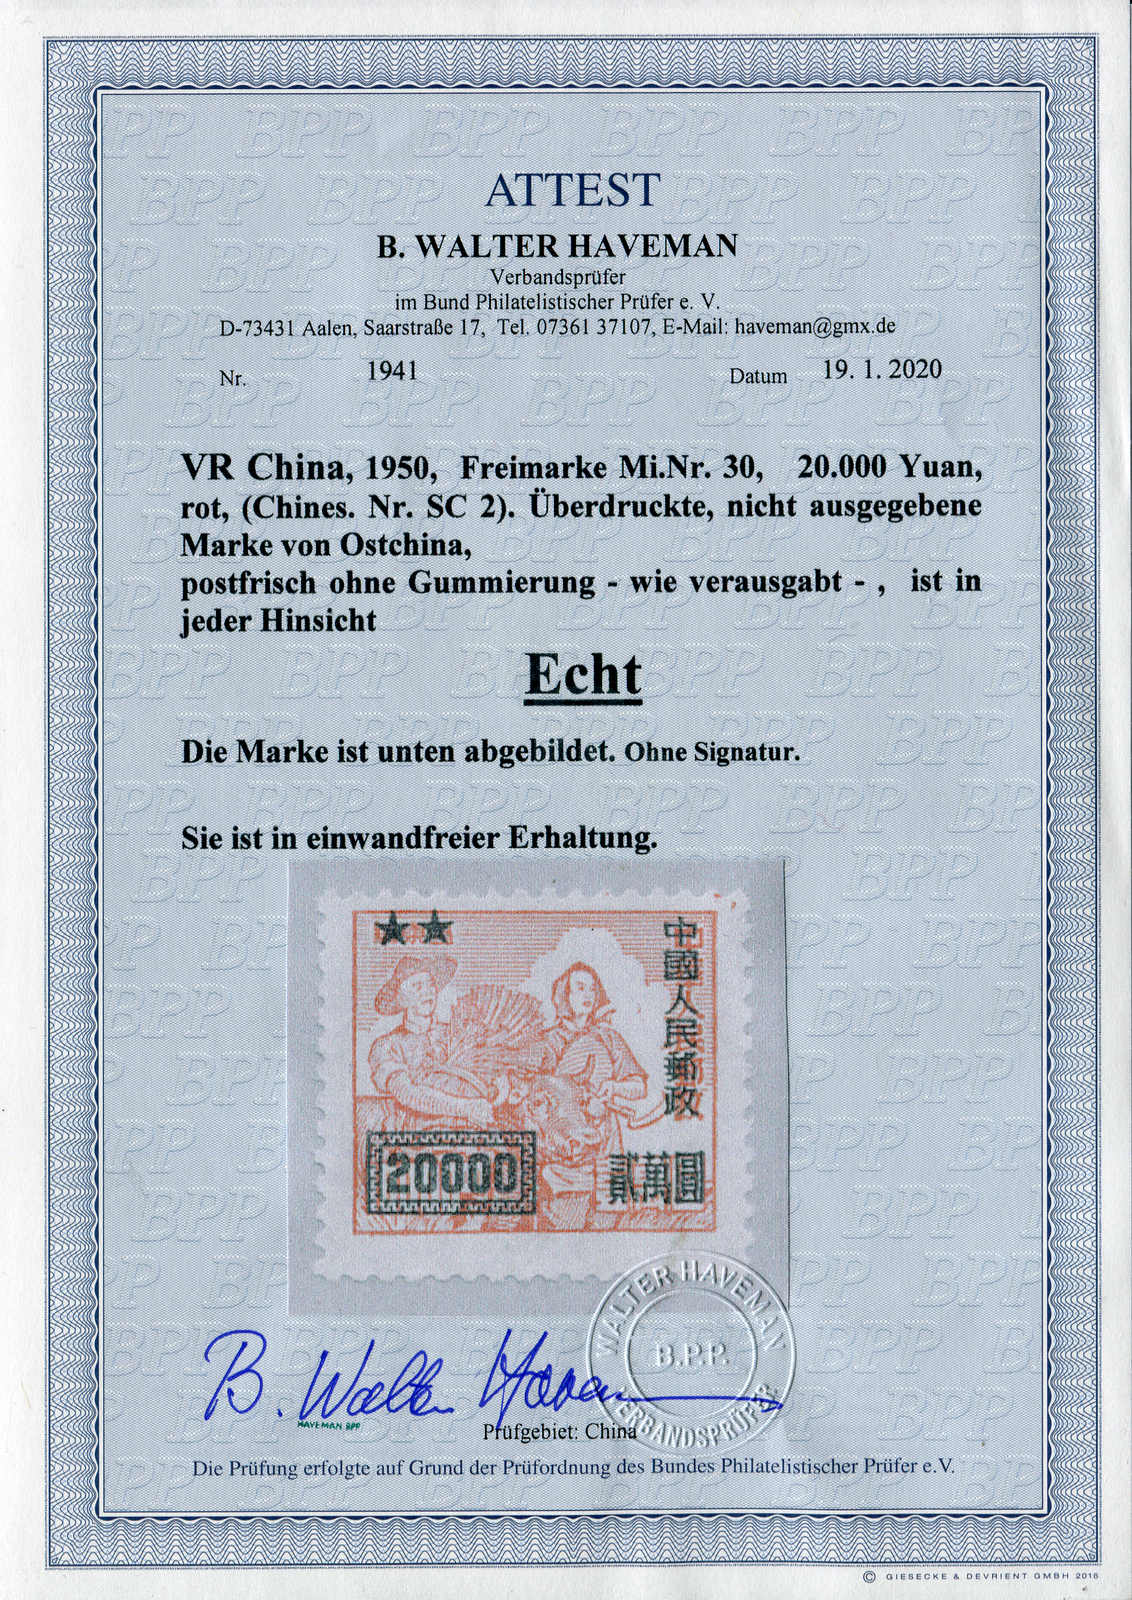 Lot 4243 - Worldwide A-Z People's Republic of China -  Auktionshaus Schlegel 26 Public Auction